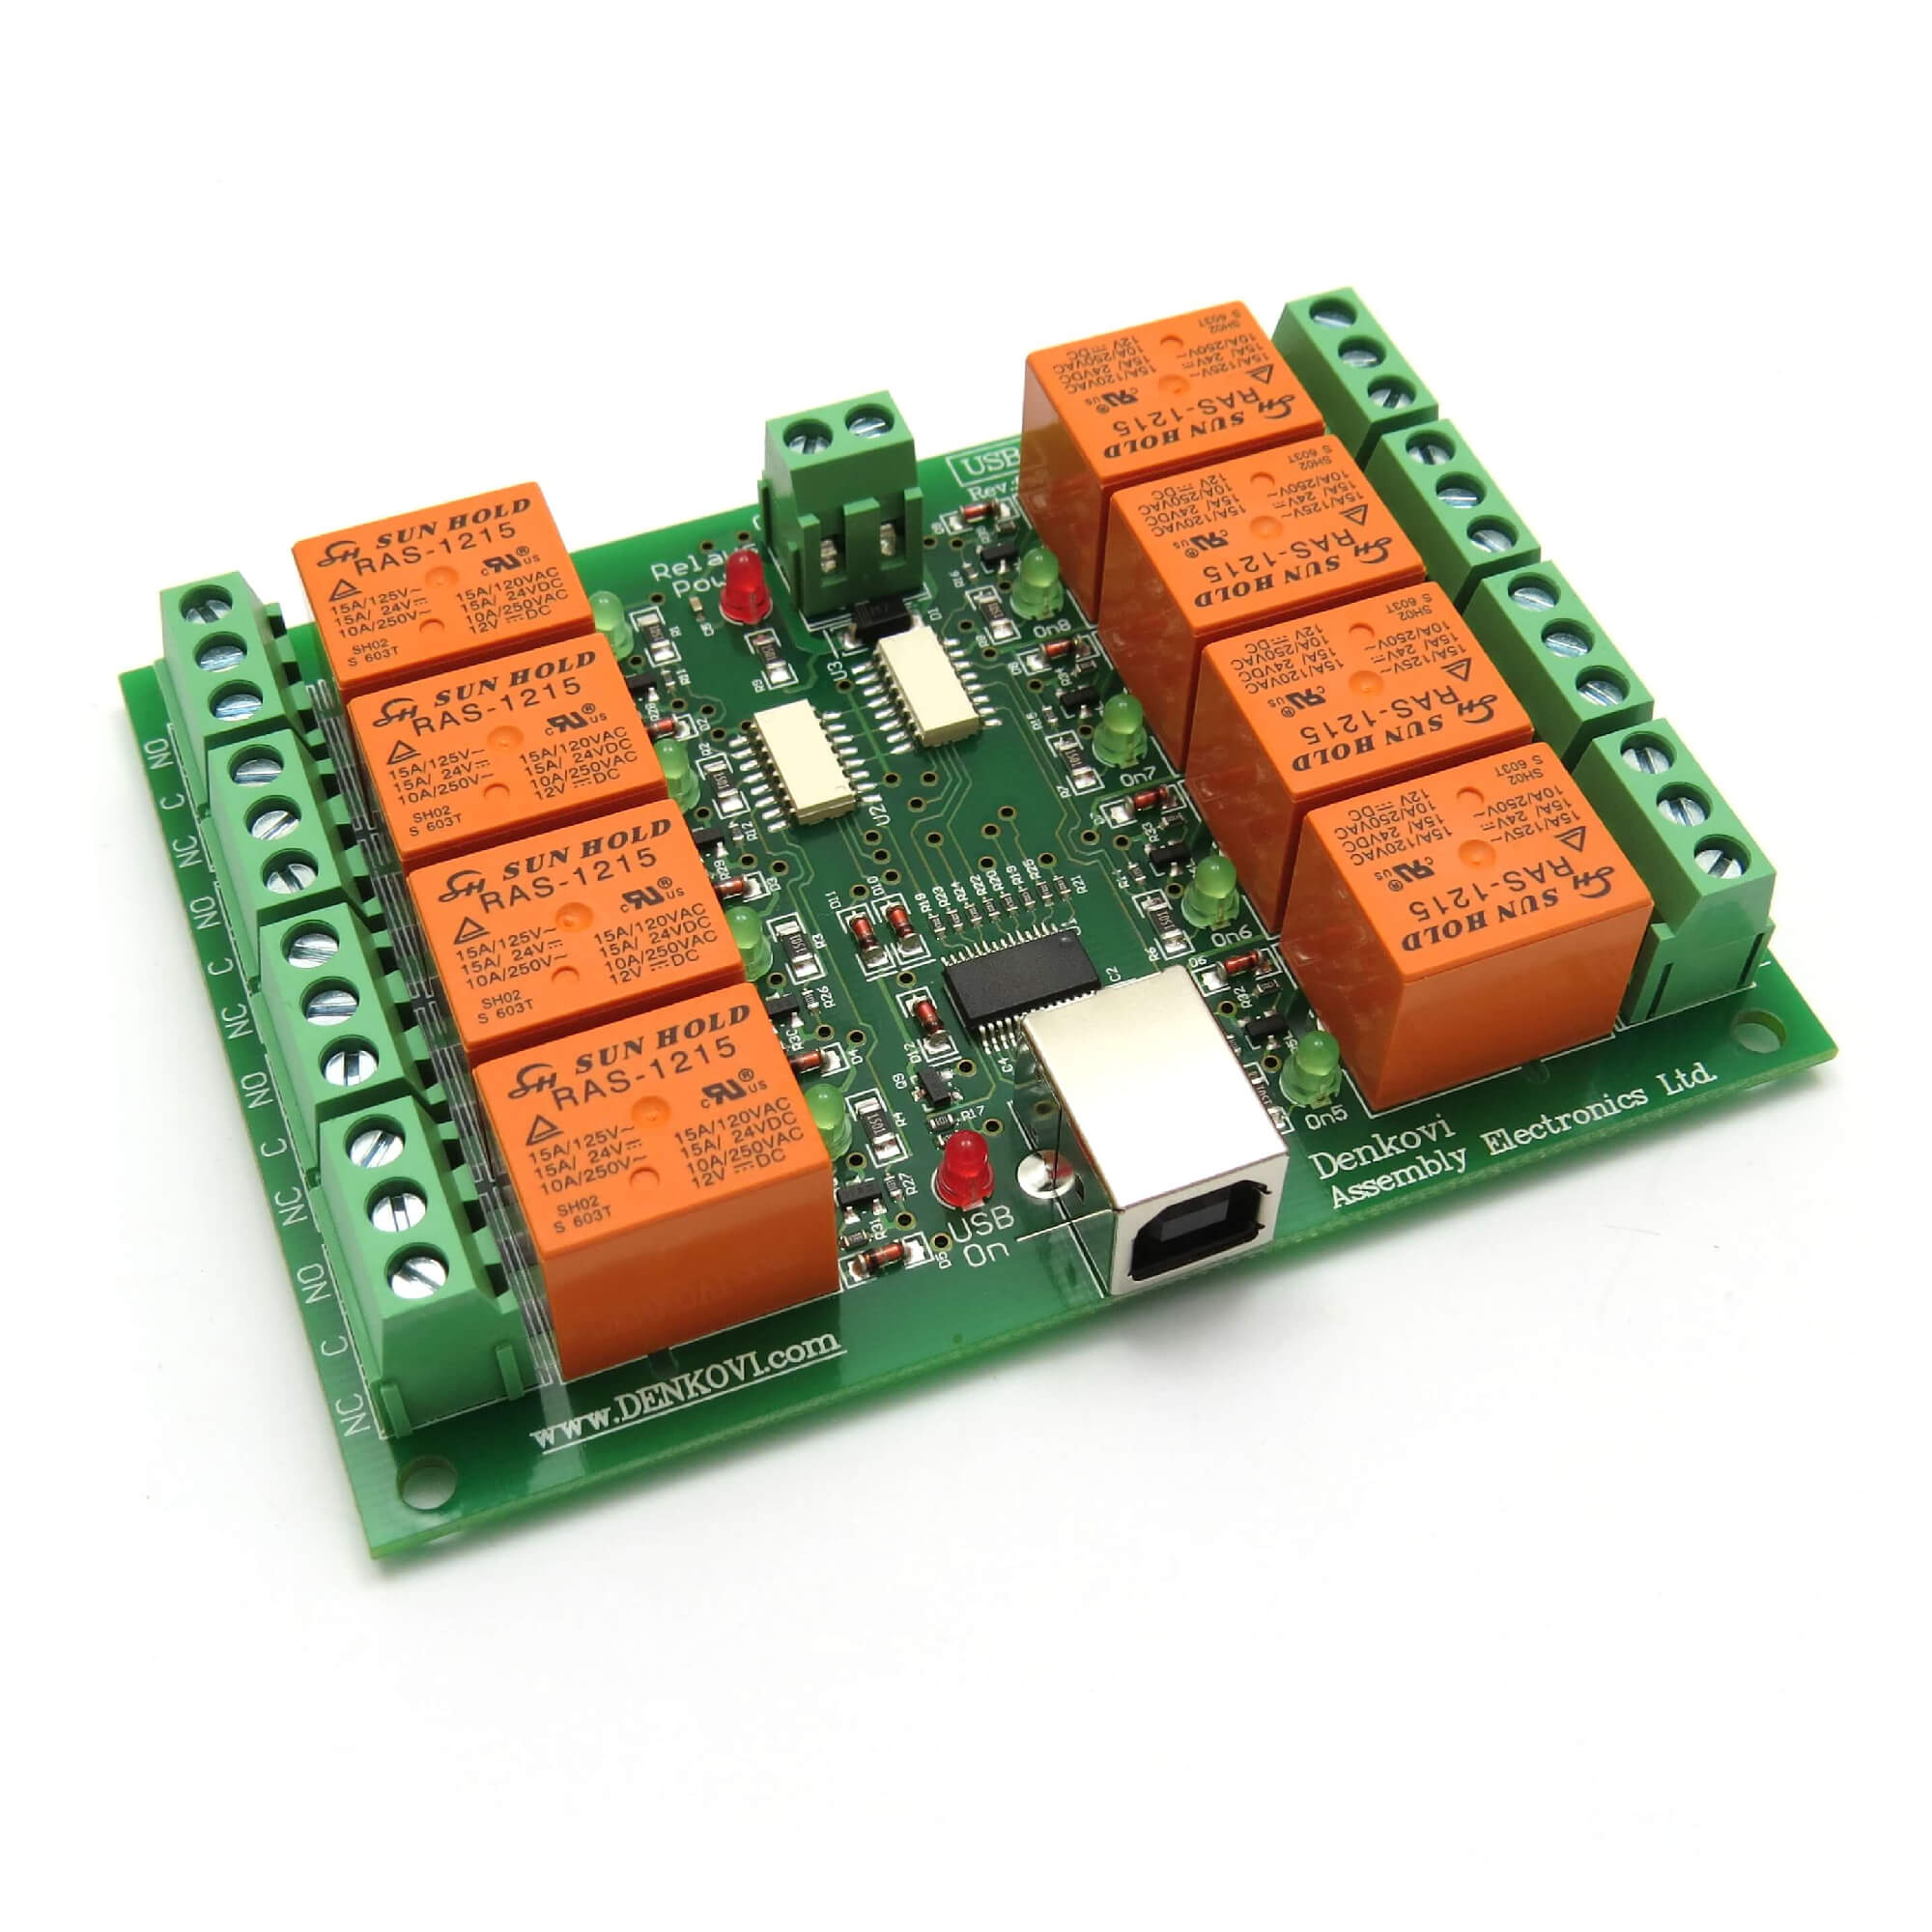 Usb Eight8 Relay Output Module Switch Board 12v 3800159301204 Ebay Electrical Use This Is Controlled Opto Isolated With 8 Spdt Relays 10a 250vac 15a 120vac 28vdc You May It For Simple On Off Switching